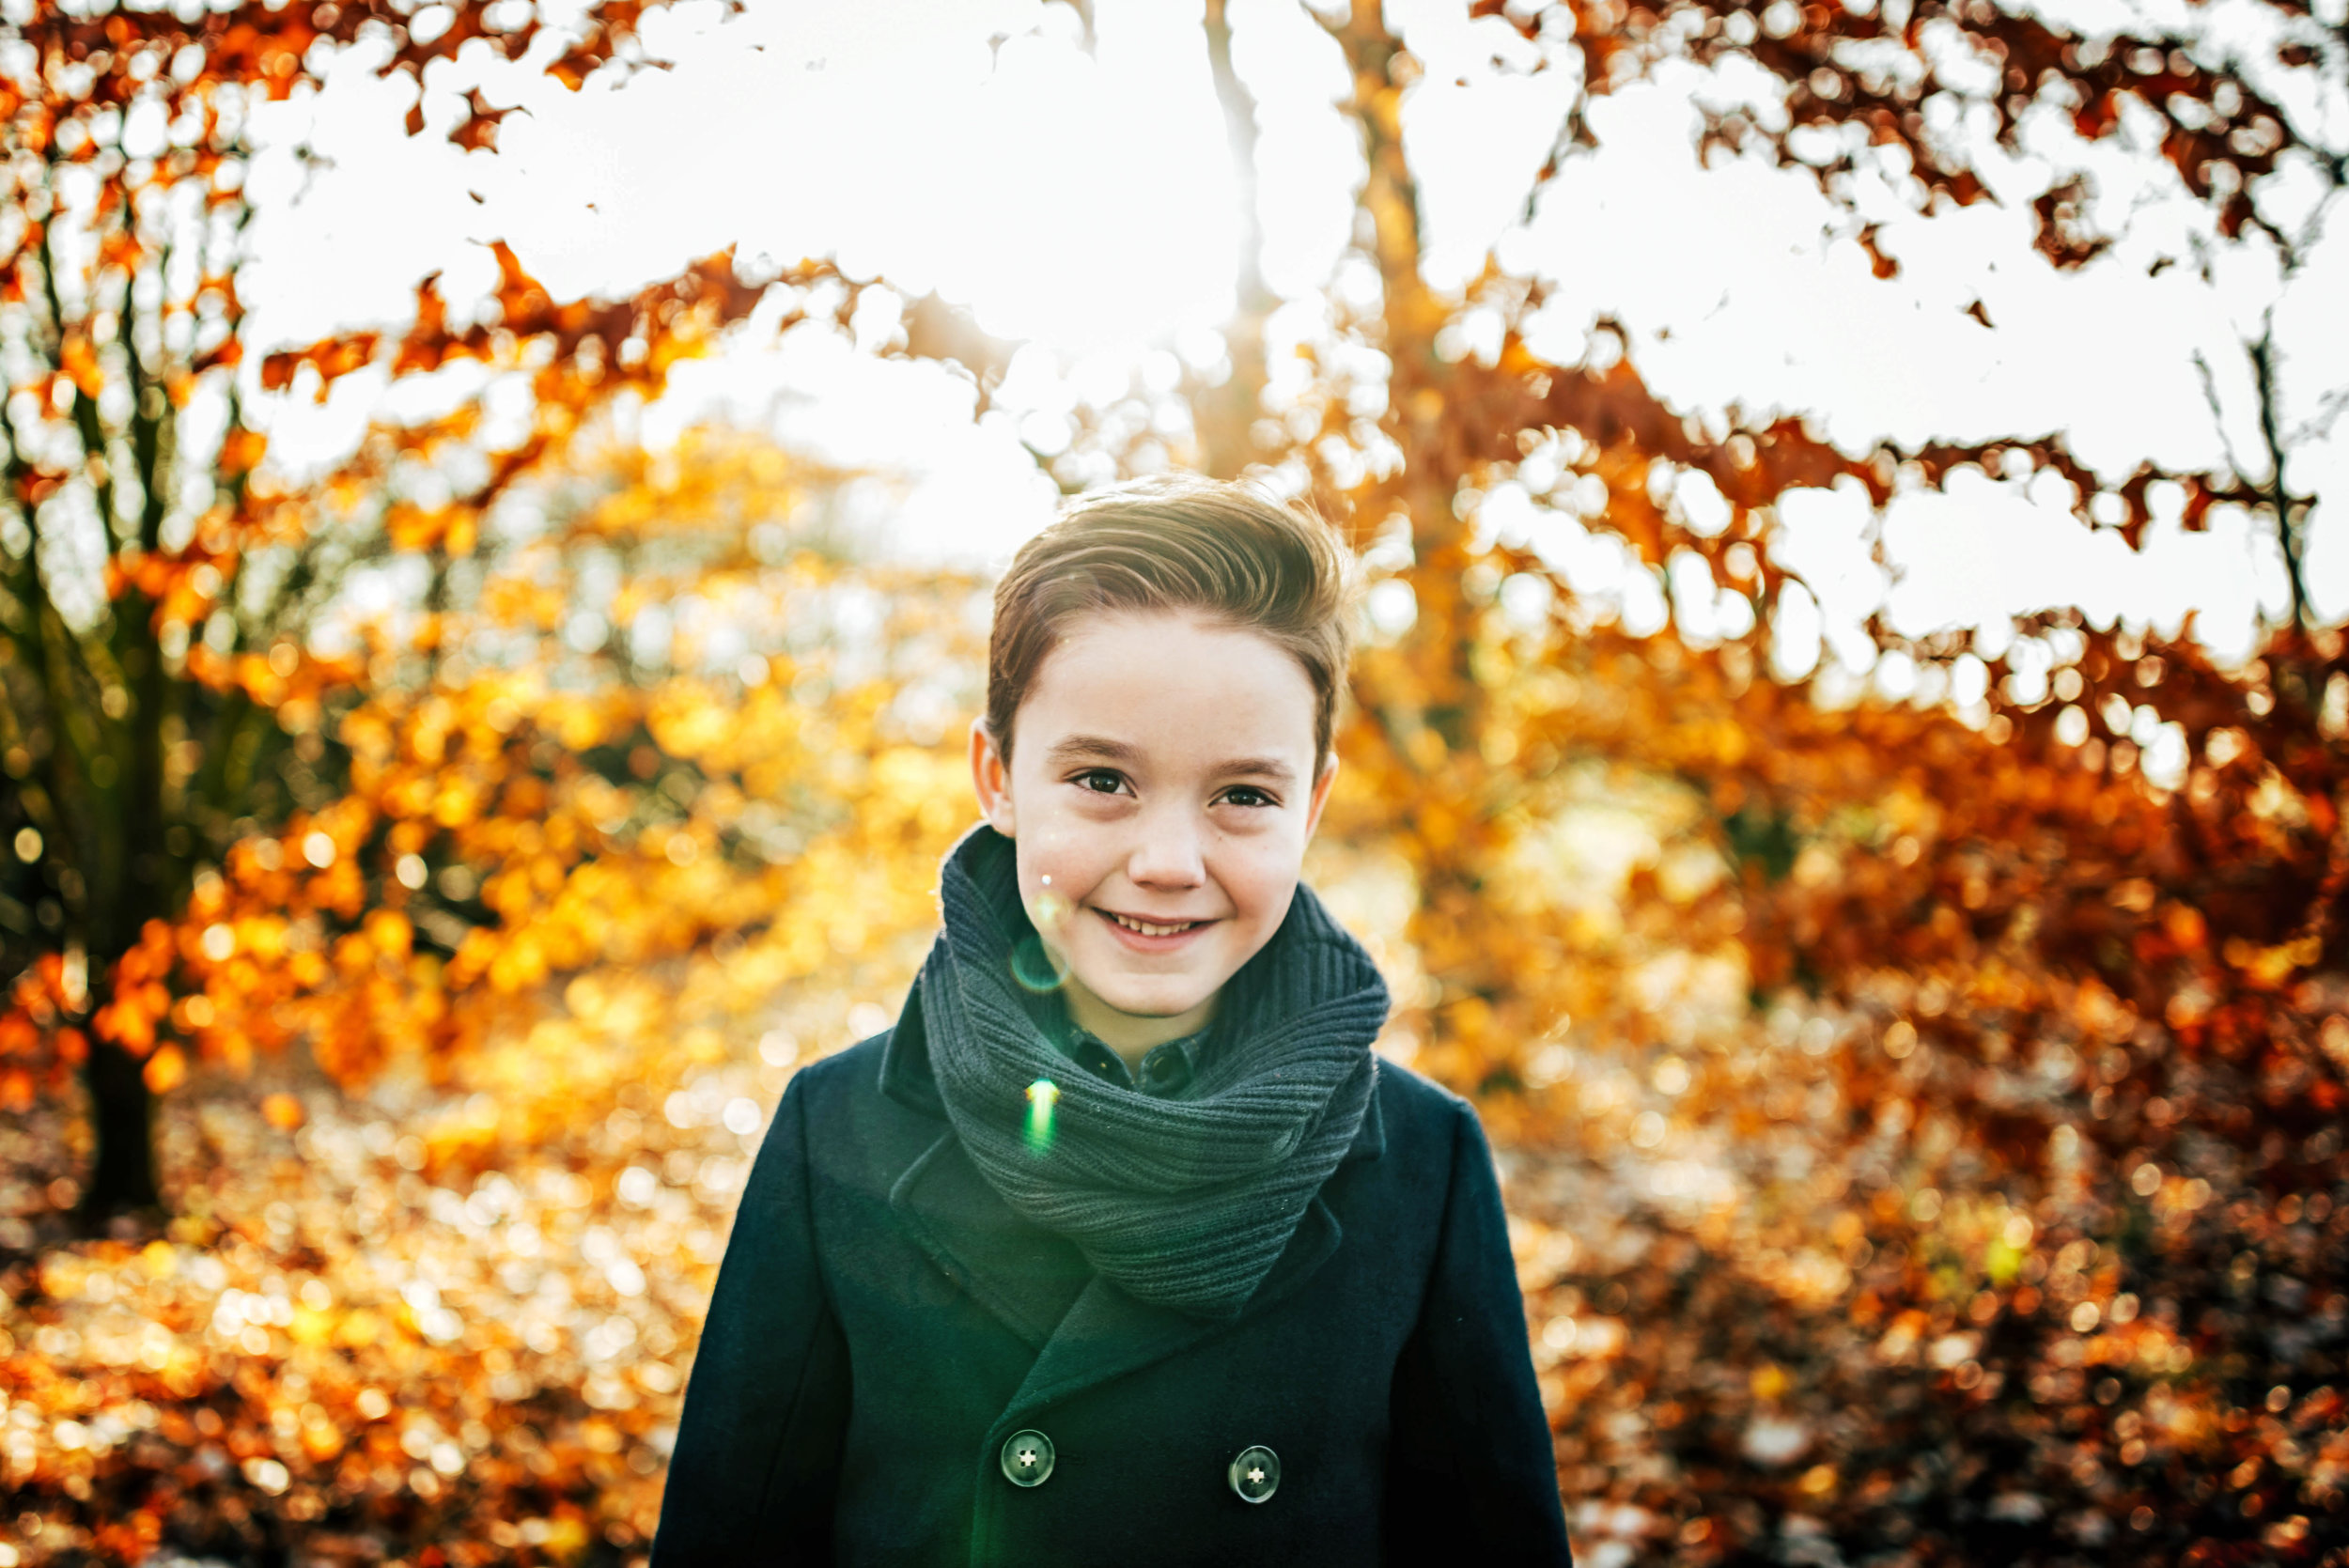 Young boy in Autumn light Essex UK Family Childhood Lifestyle Documentary Photographer